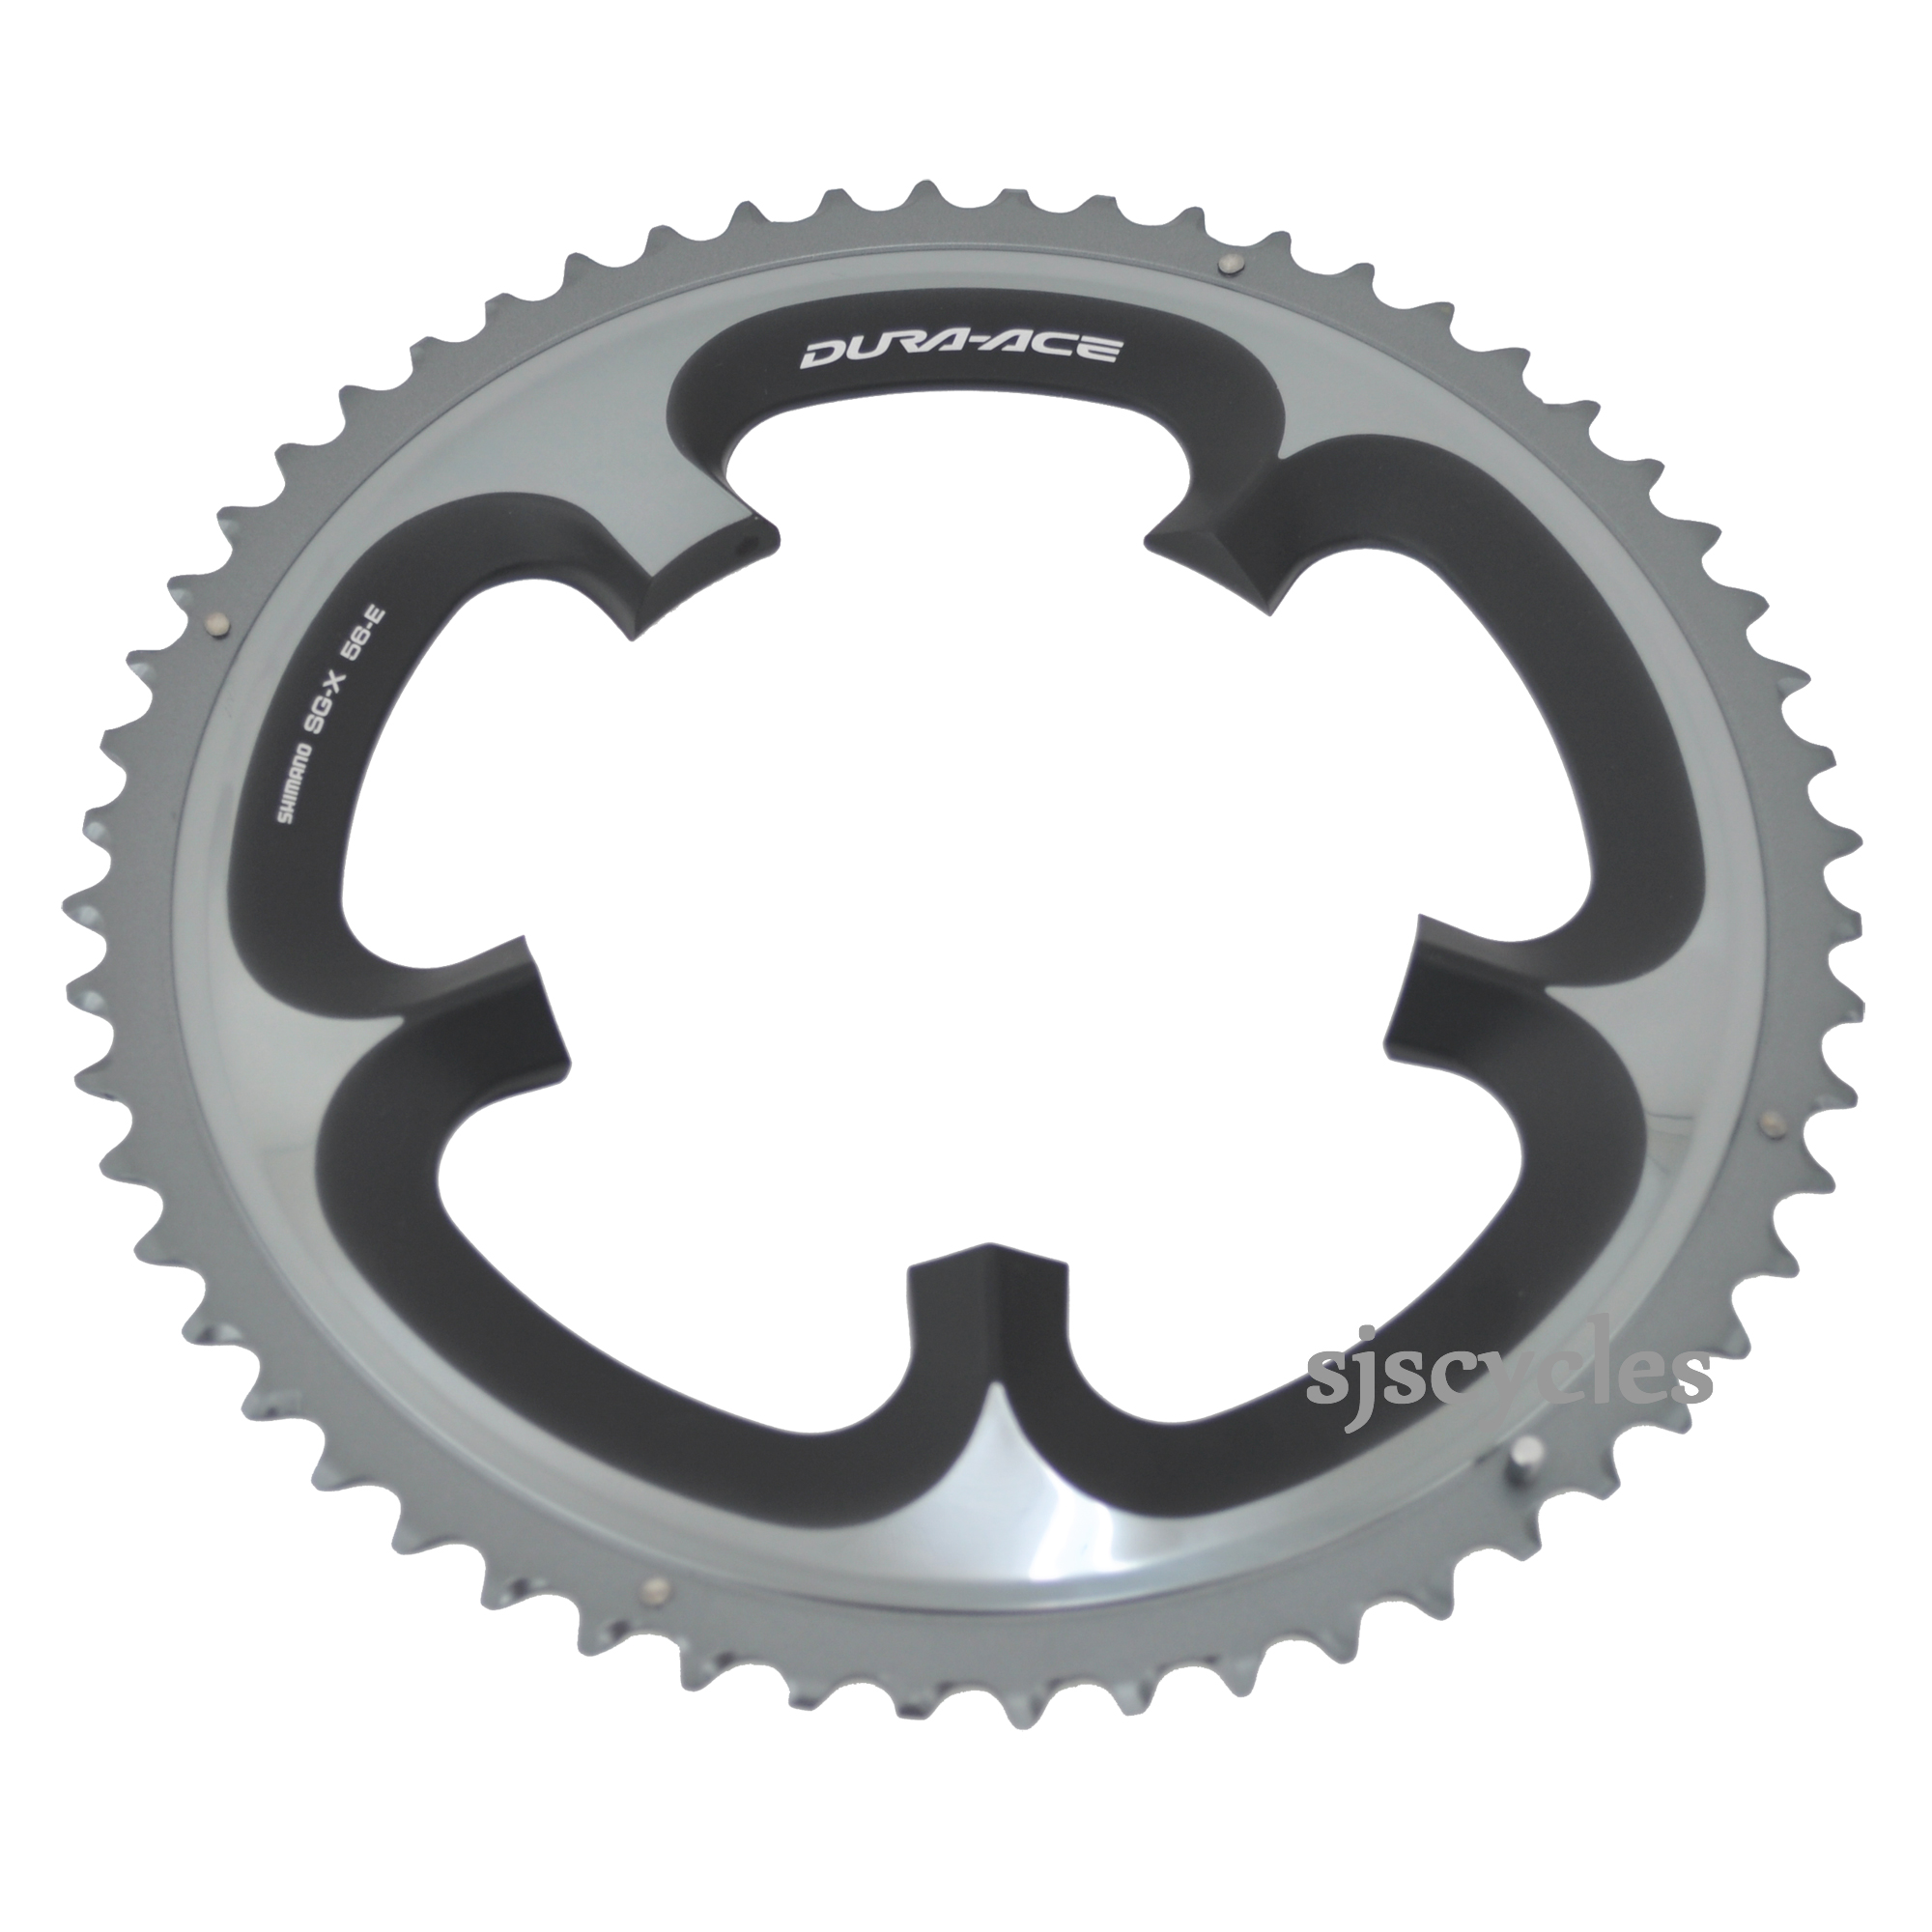 Shimano Dura-Ace FC-7900 Replacement Outer Chainring A-Type 130 BCD x 53T Black